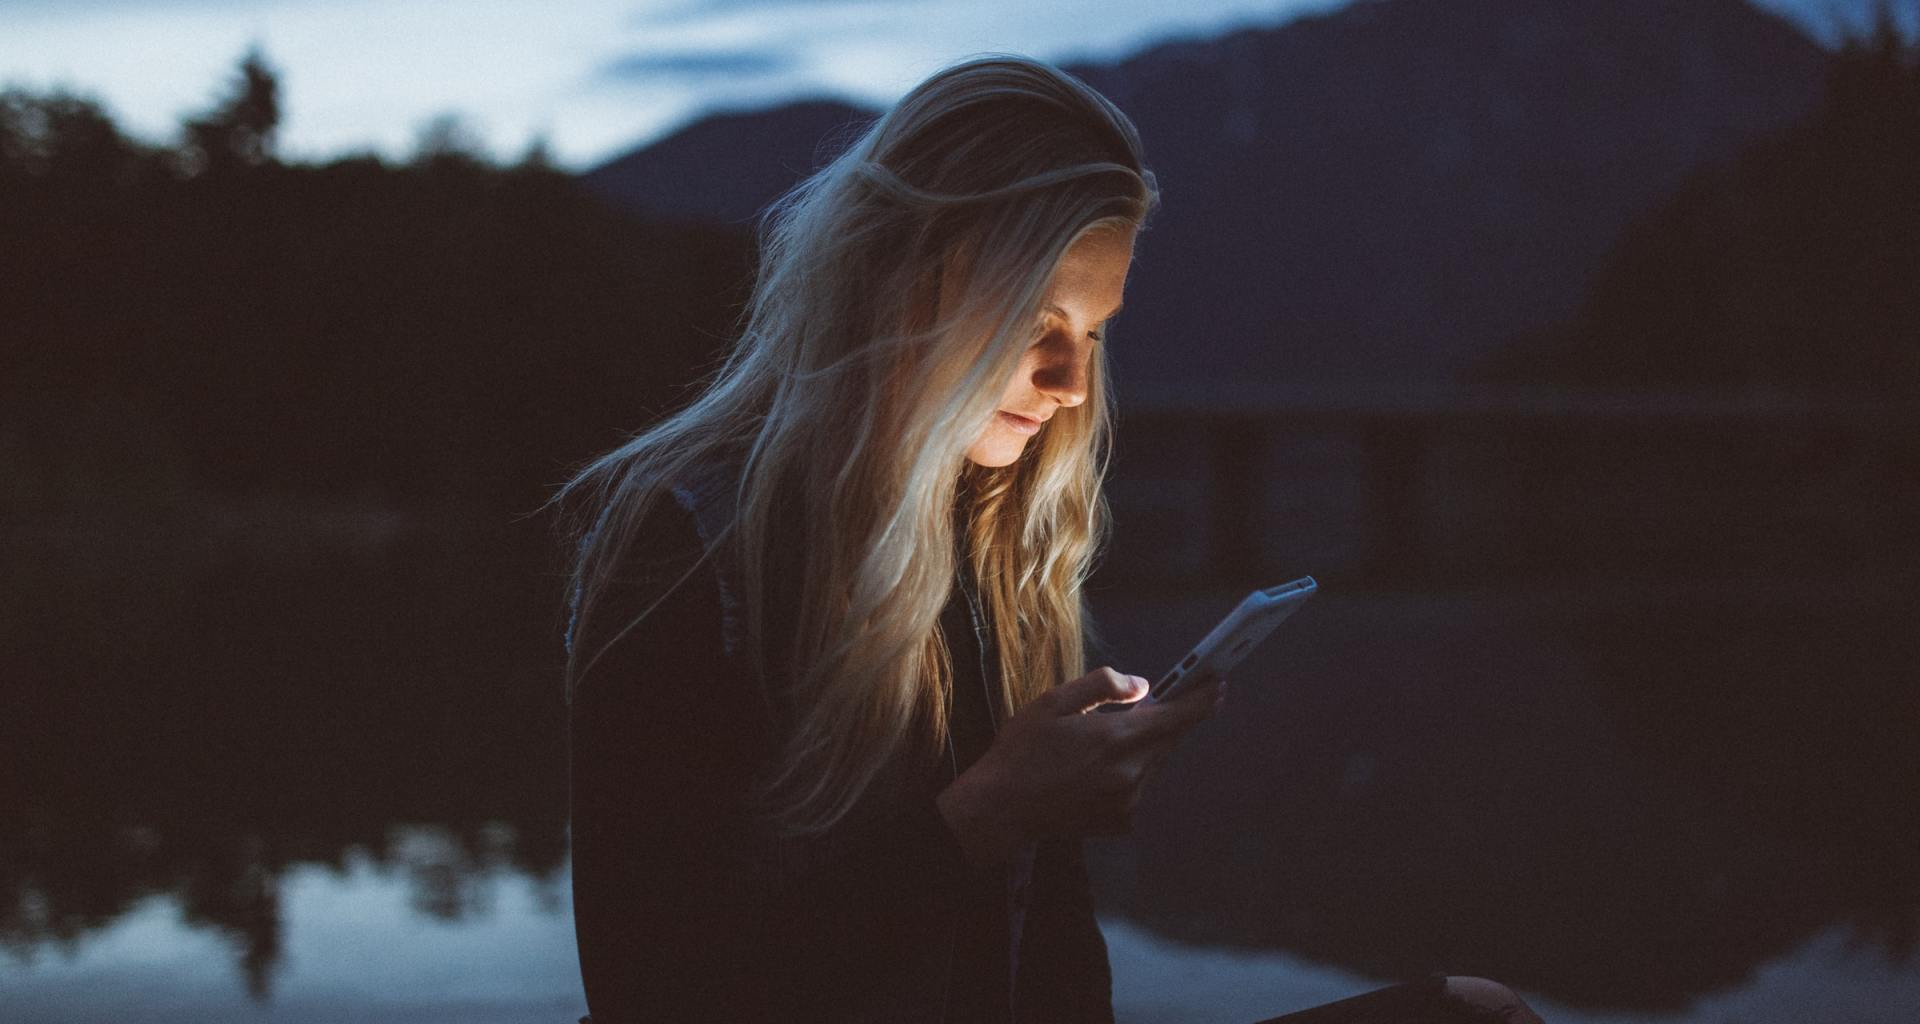 Blonde woman sitting and texting girl using an iPhone late evening at seaside